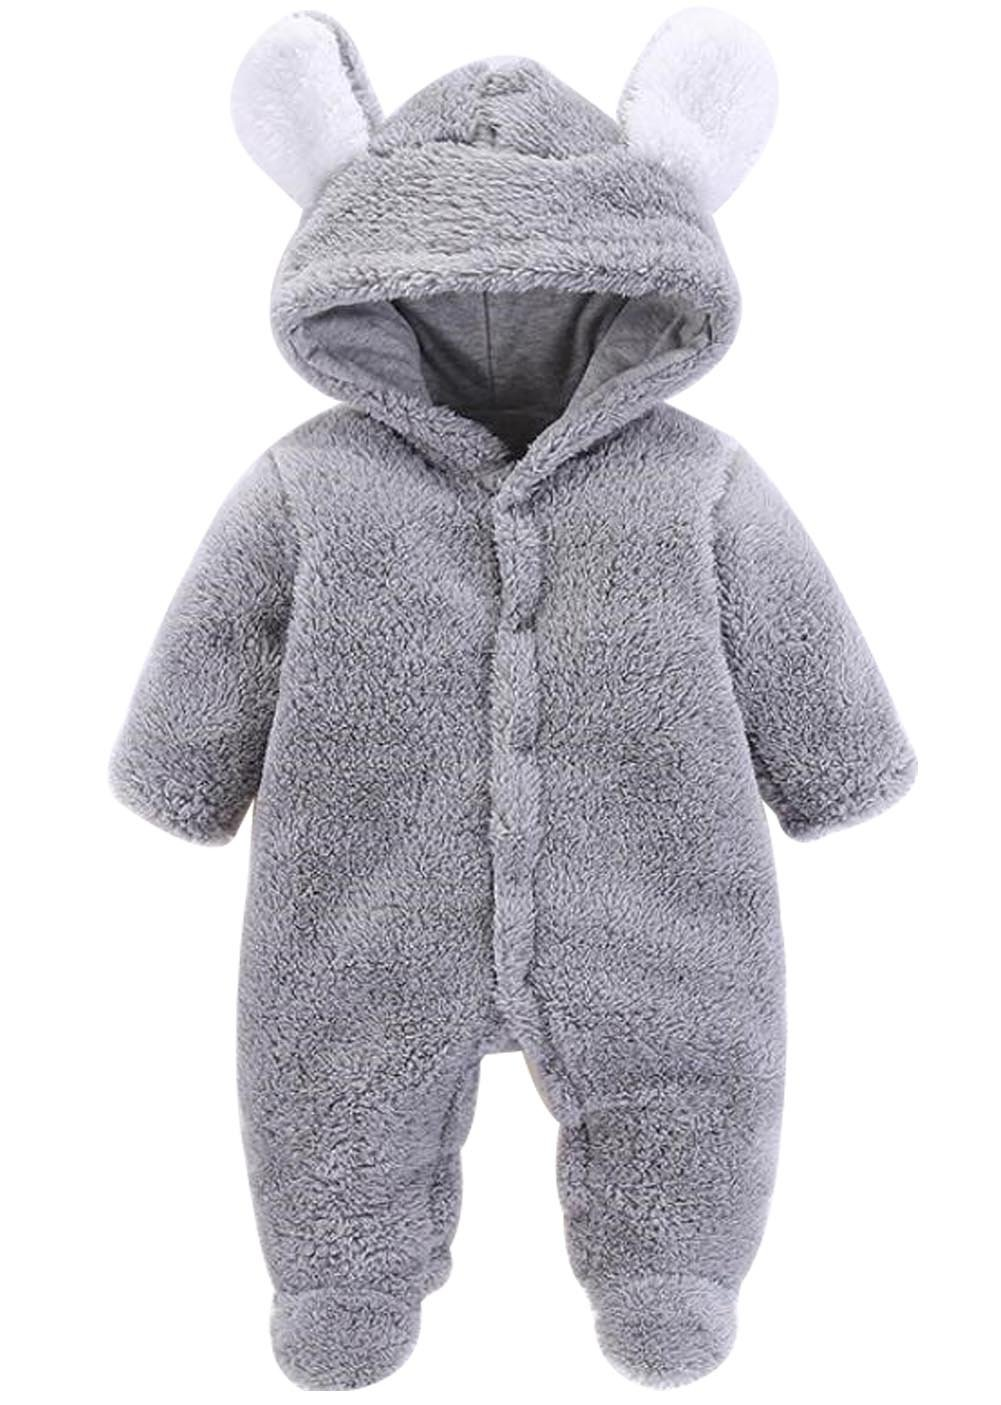 SUPEYA Infant Baby Boys Girls 3D Cartoon Bear Fleece One-Piece Jumpsuit Hooded Romper